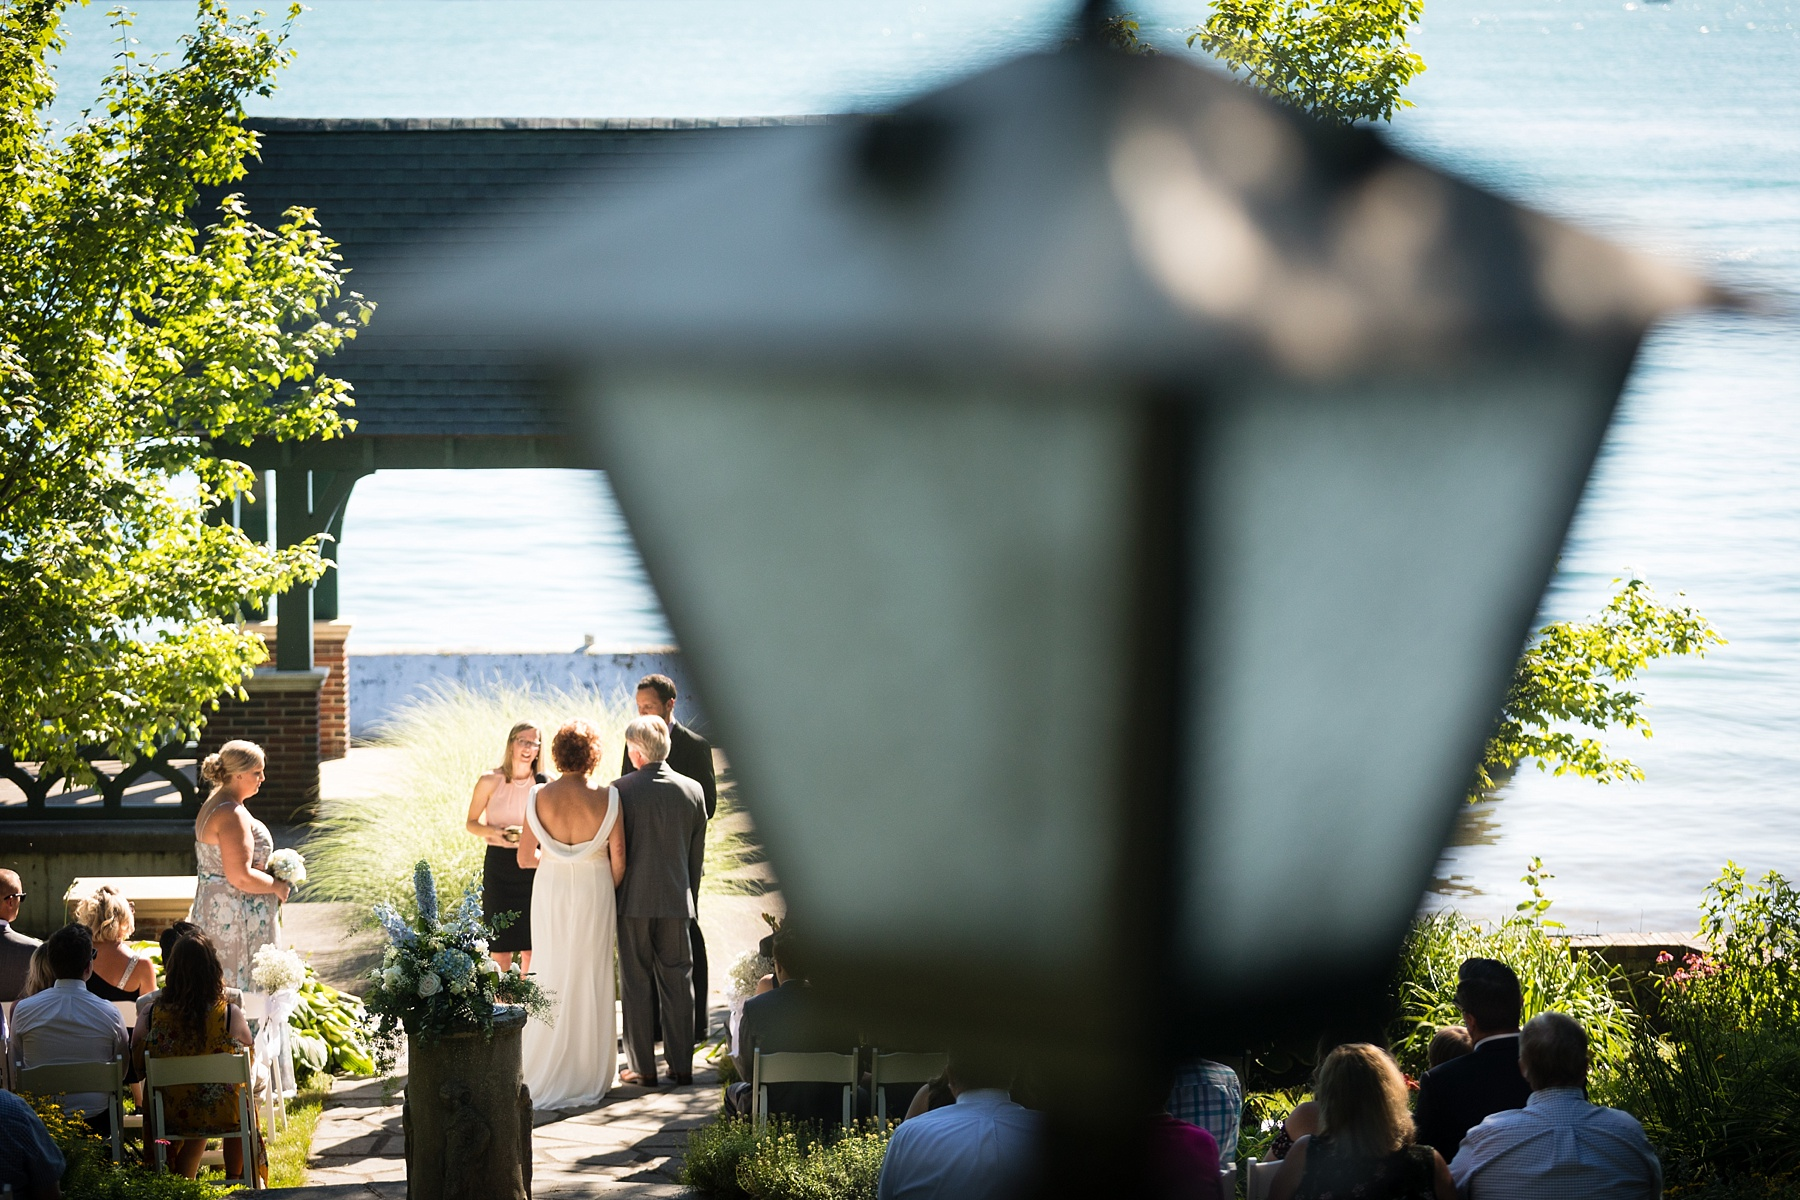 Brandon_Shafer_Photography_Lori_Wes_Gull_Lake_Wedding_0023.jpg